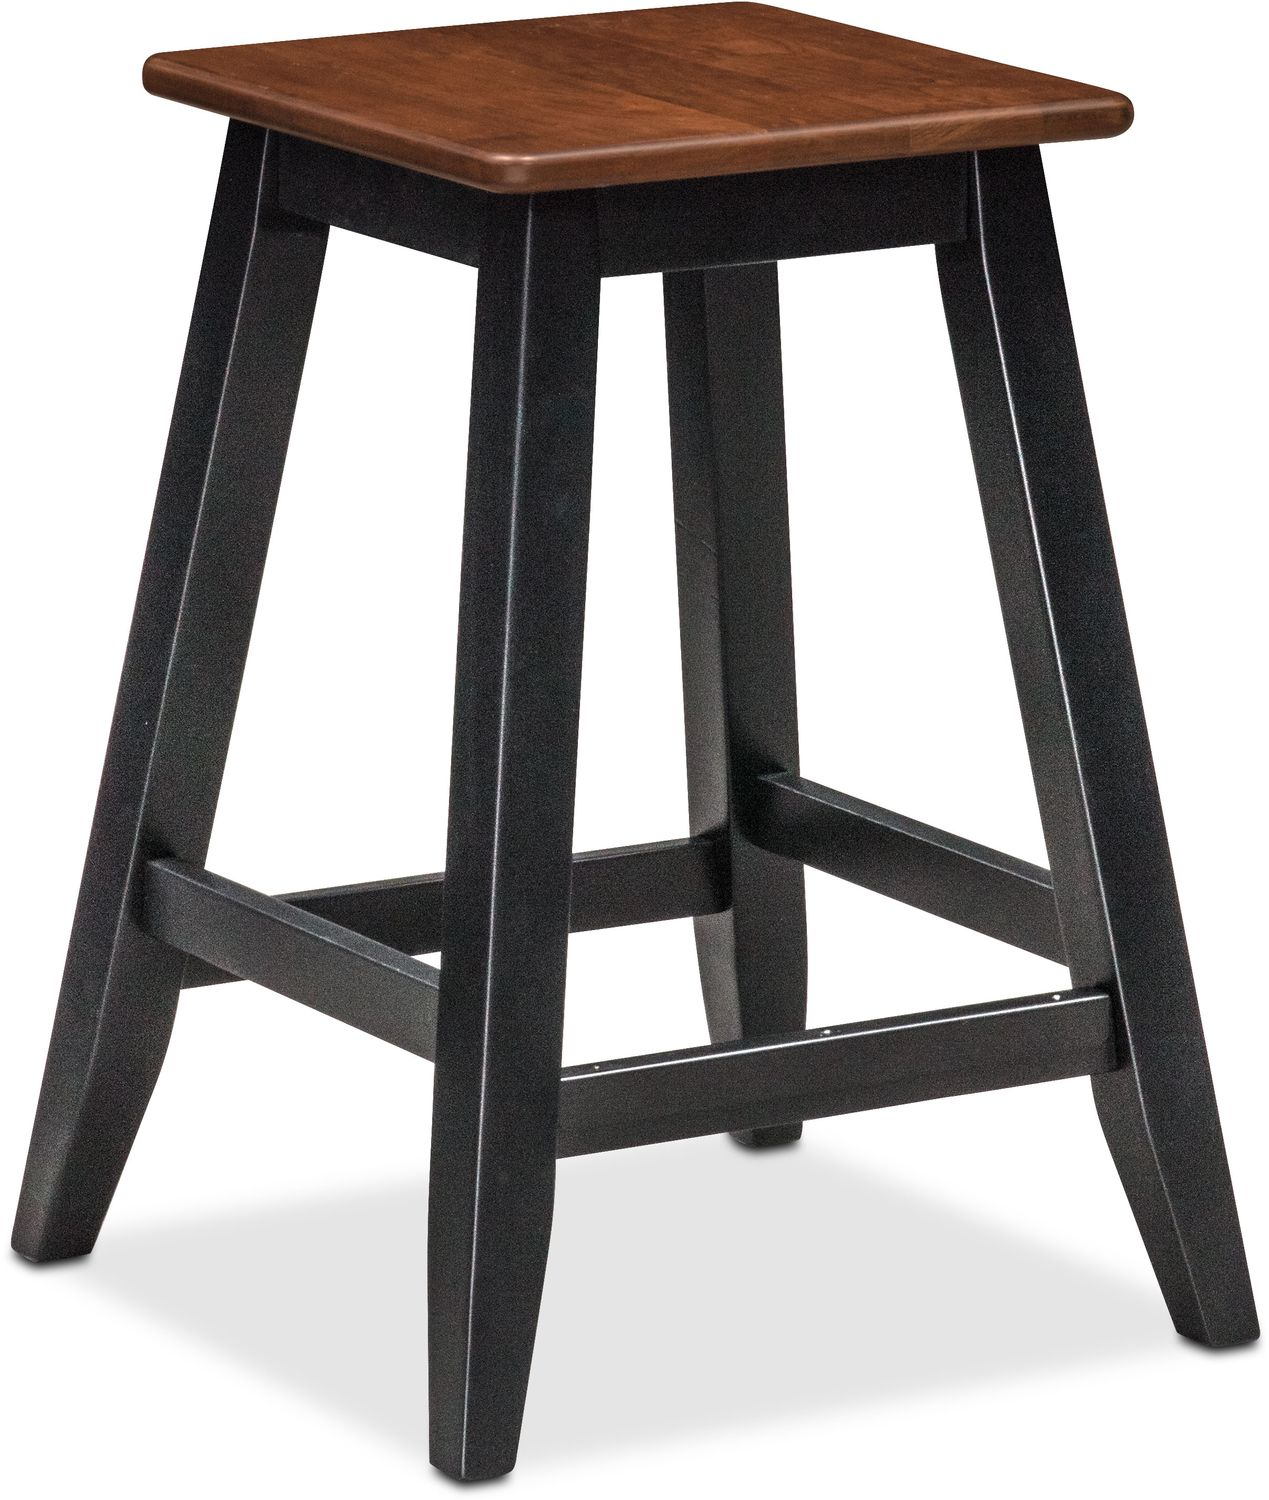 Table And Bar Stools Nantucket Counter Height Stool